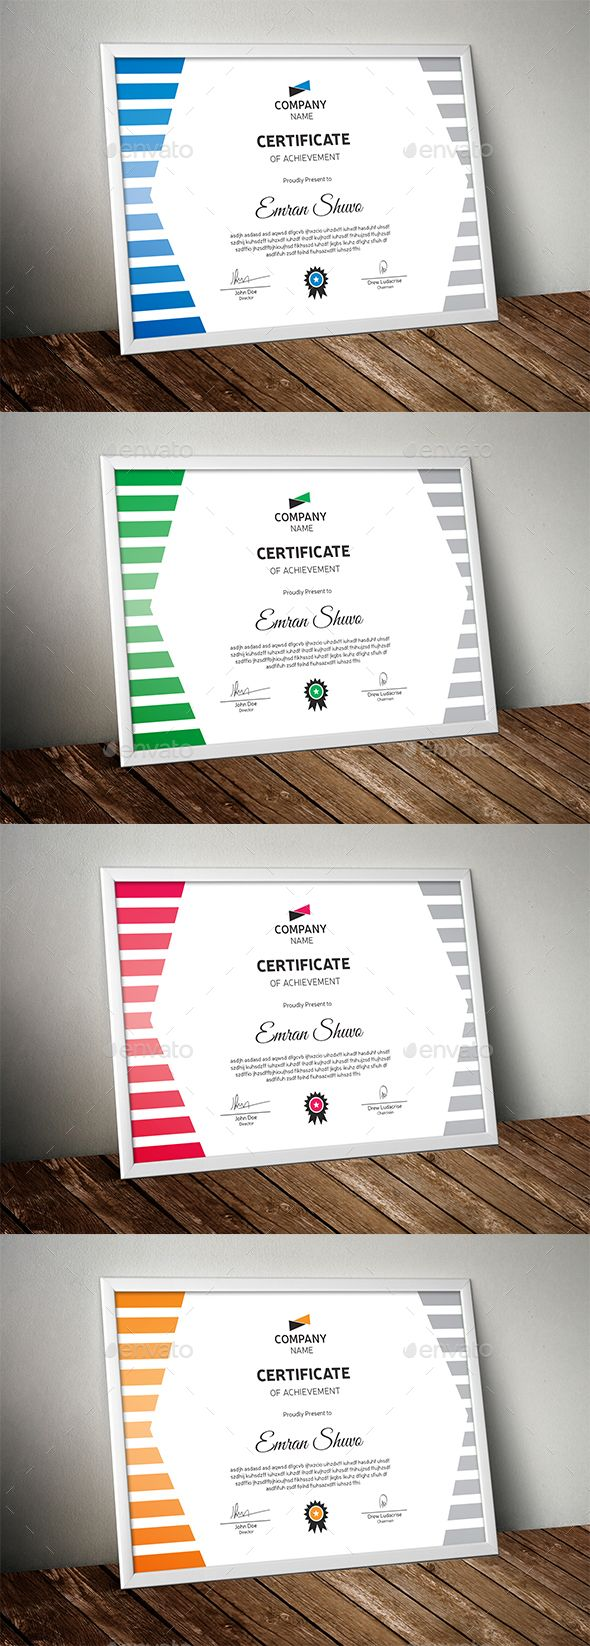 Certificate #appreciation #certificate indesign  • Download here → https://graphicriver.net/item/certificate/18204129?ref=pxcr